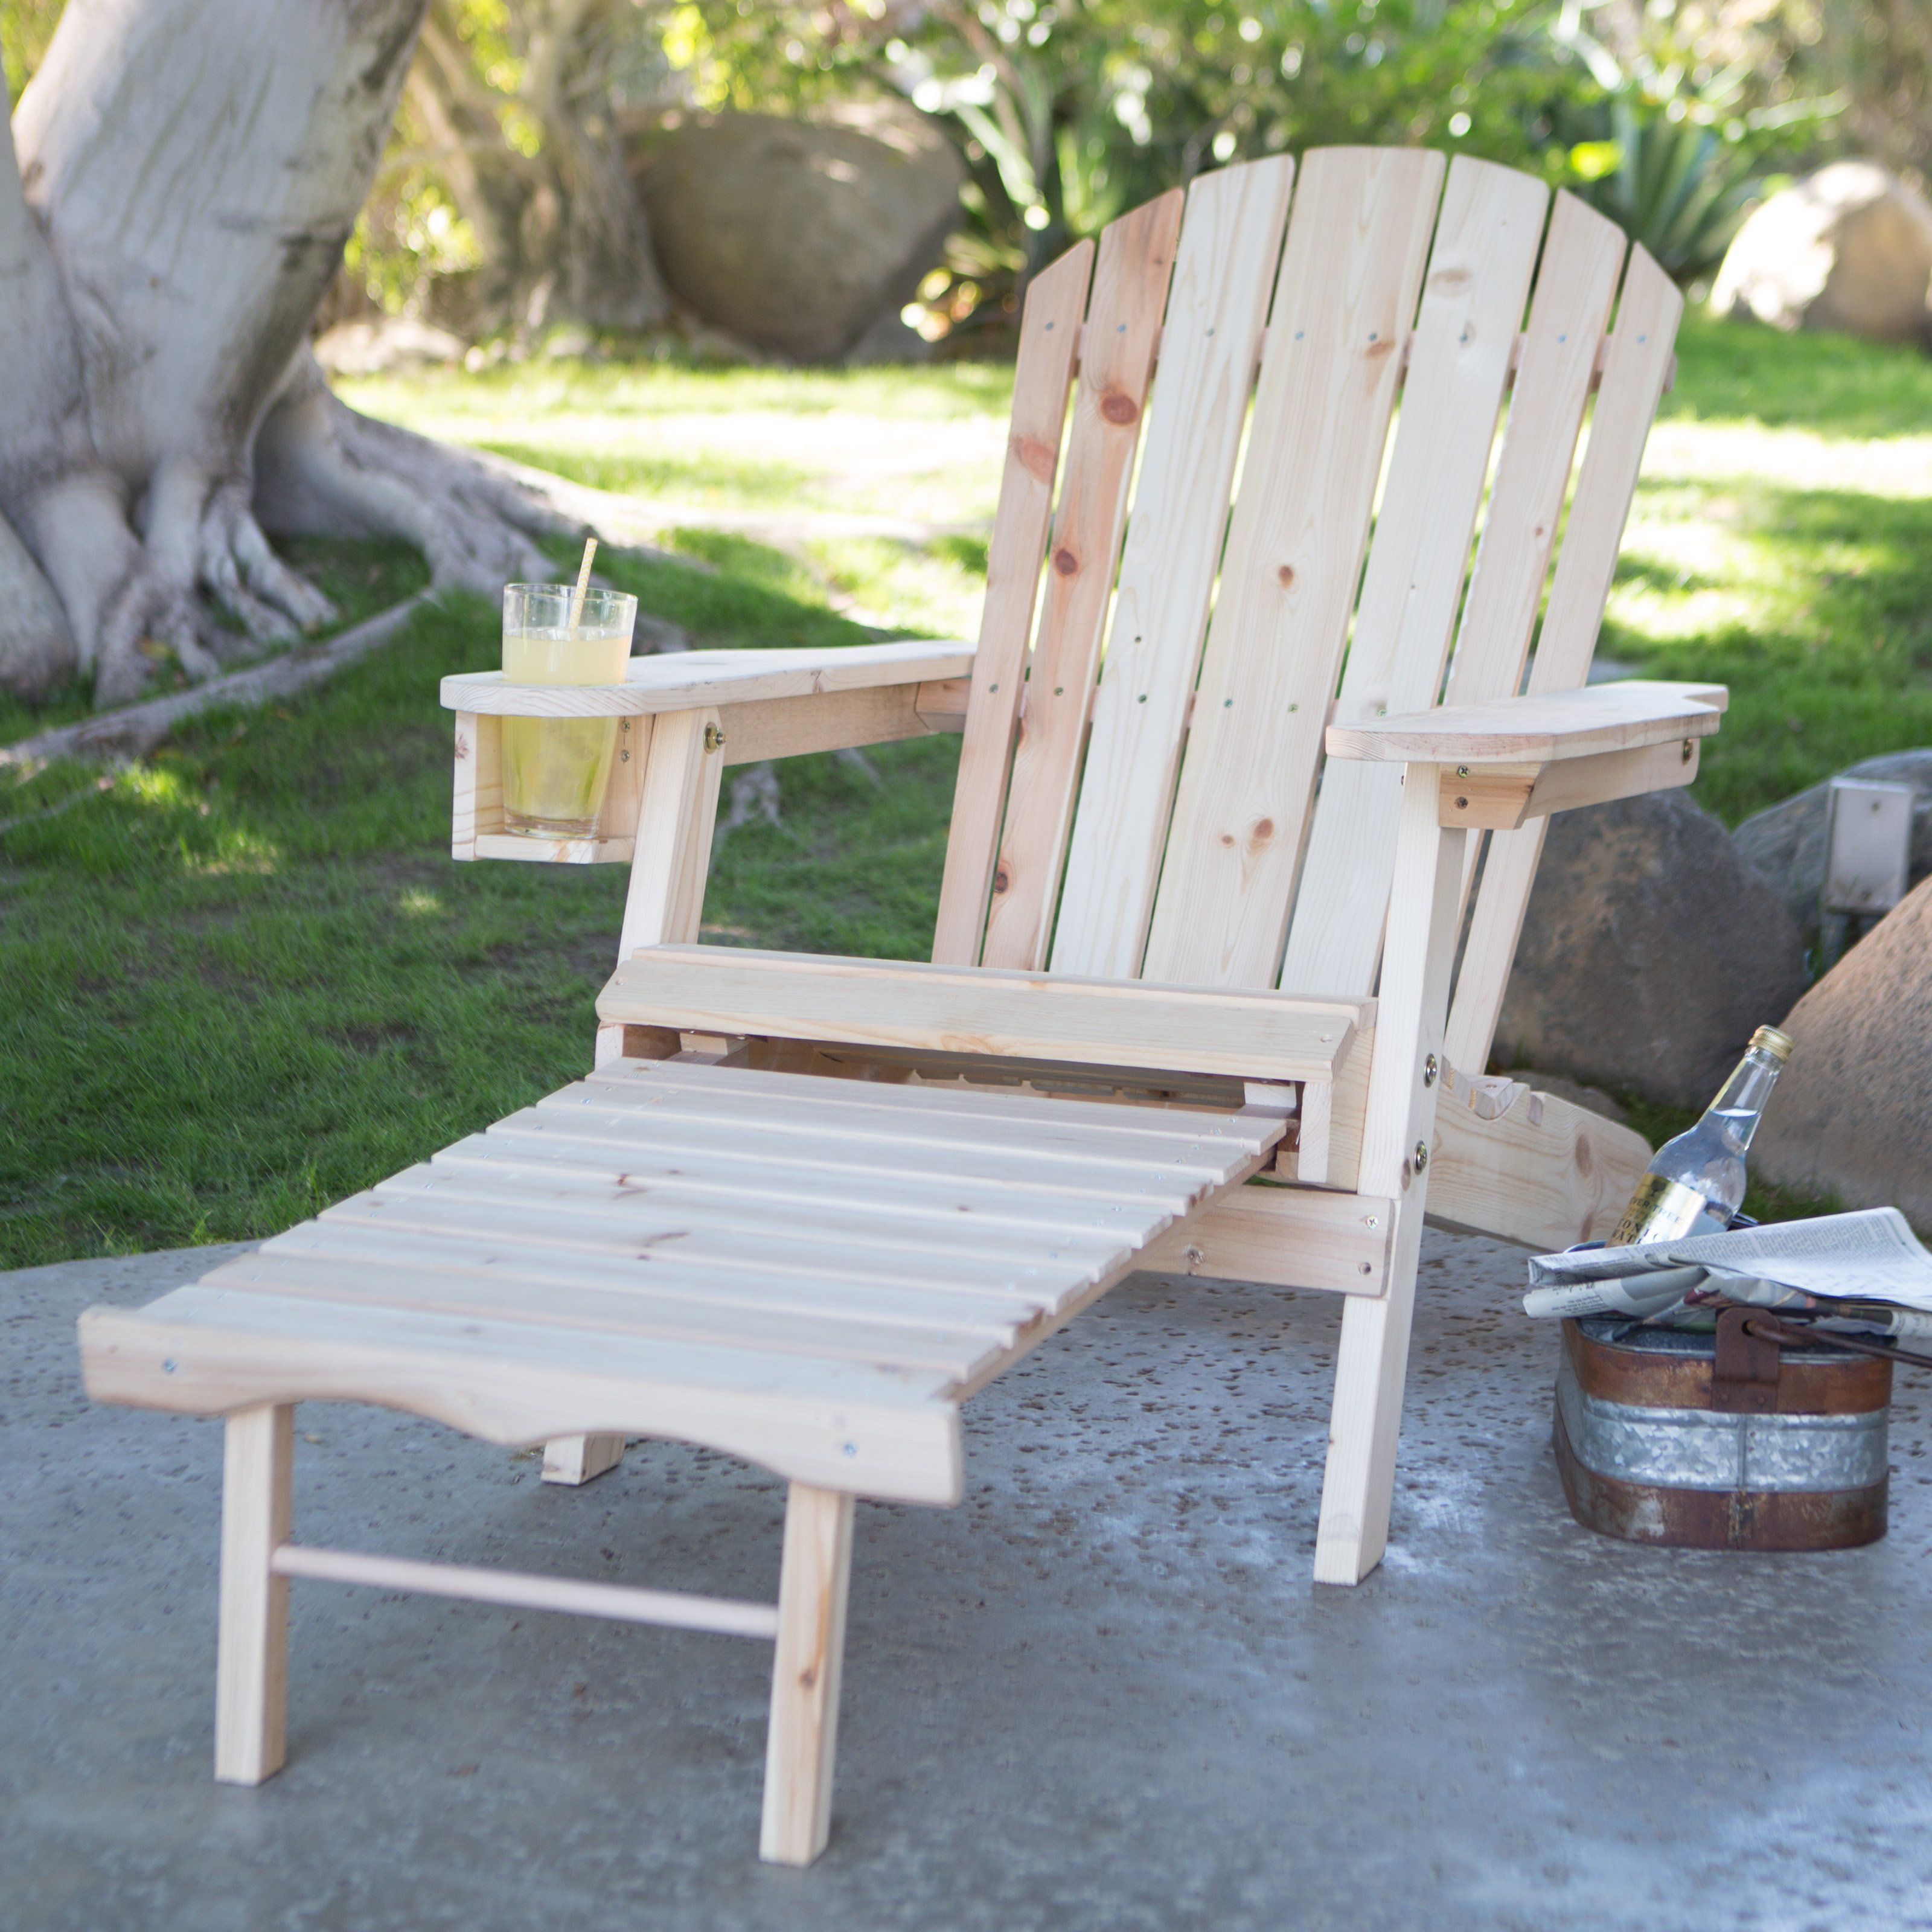 Coral Coast Big Daddy Adirondack Chair With Pull Out Ottoman And Cup Holder    Unfinished   The Coral Coast Natural Stained Adirondack Chair With  Pull Out ...